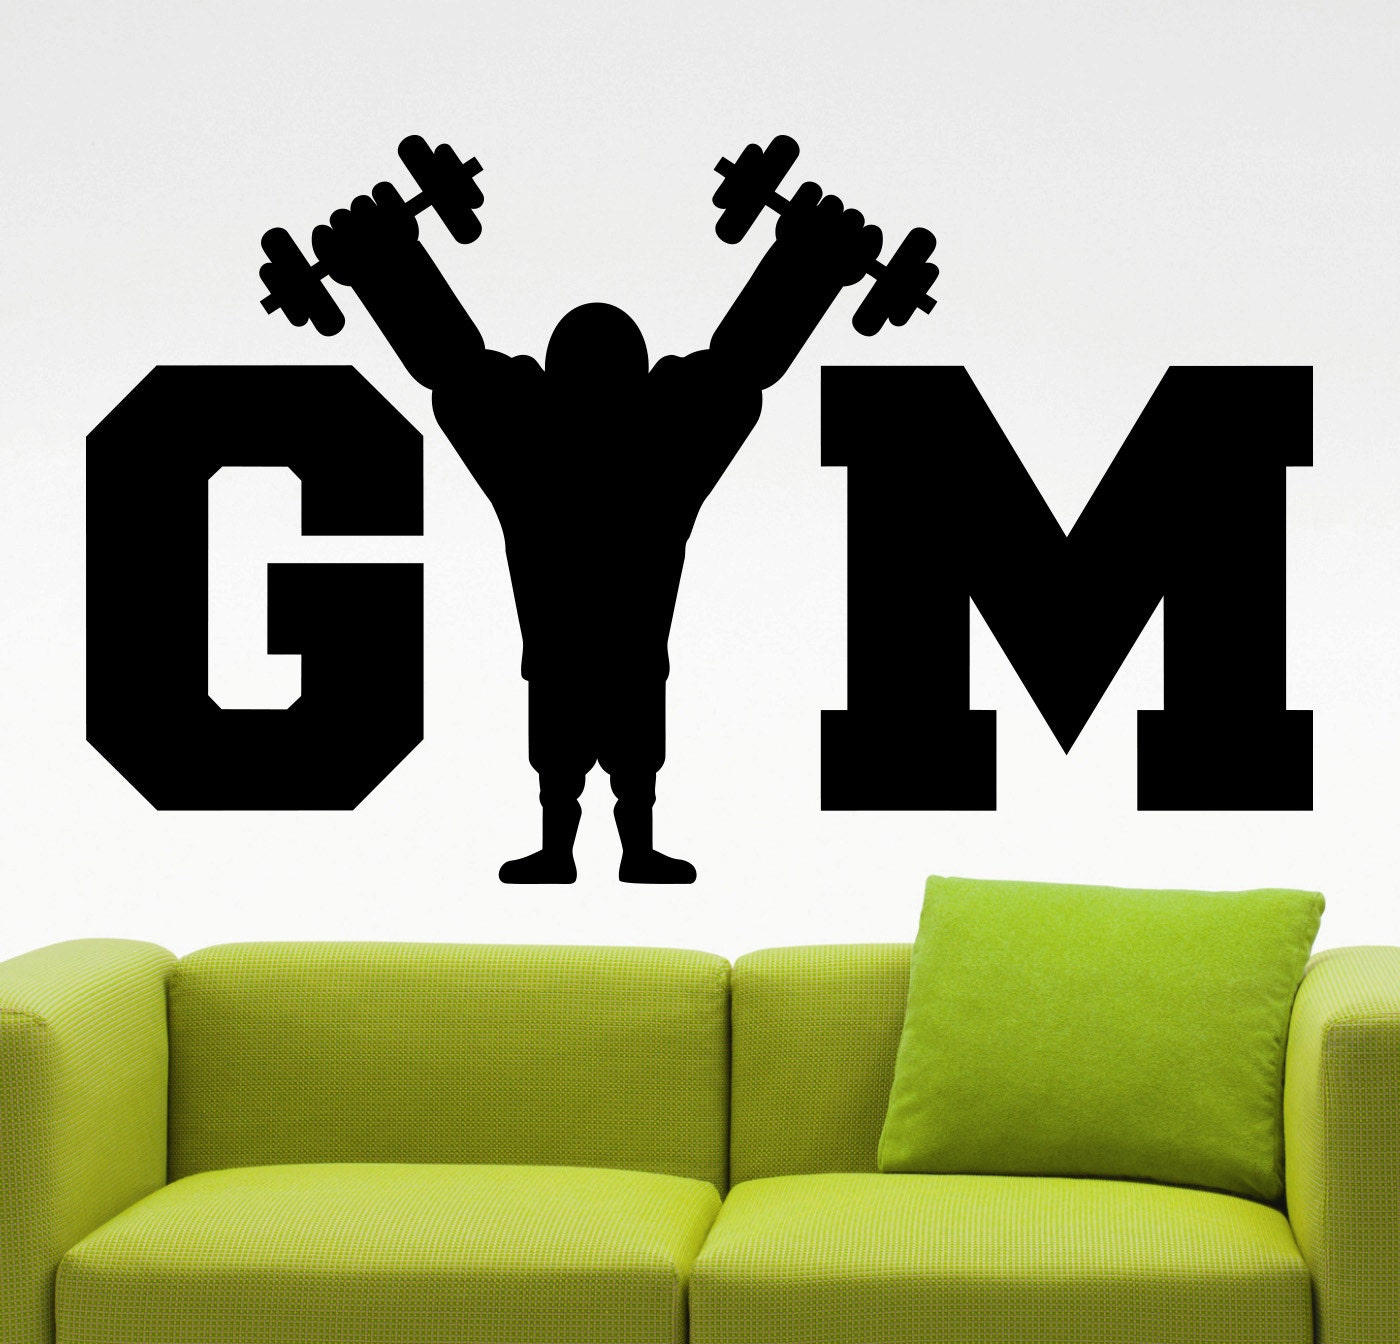 Sticker gym wall - Gym Wall Decal Fitness Stickers Sports Decals Sports Room Design Fitness Center Decoration Wall Mural Vinyl